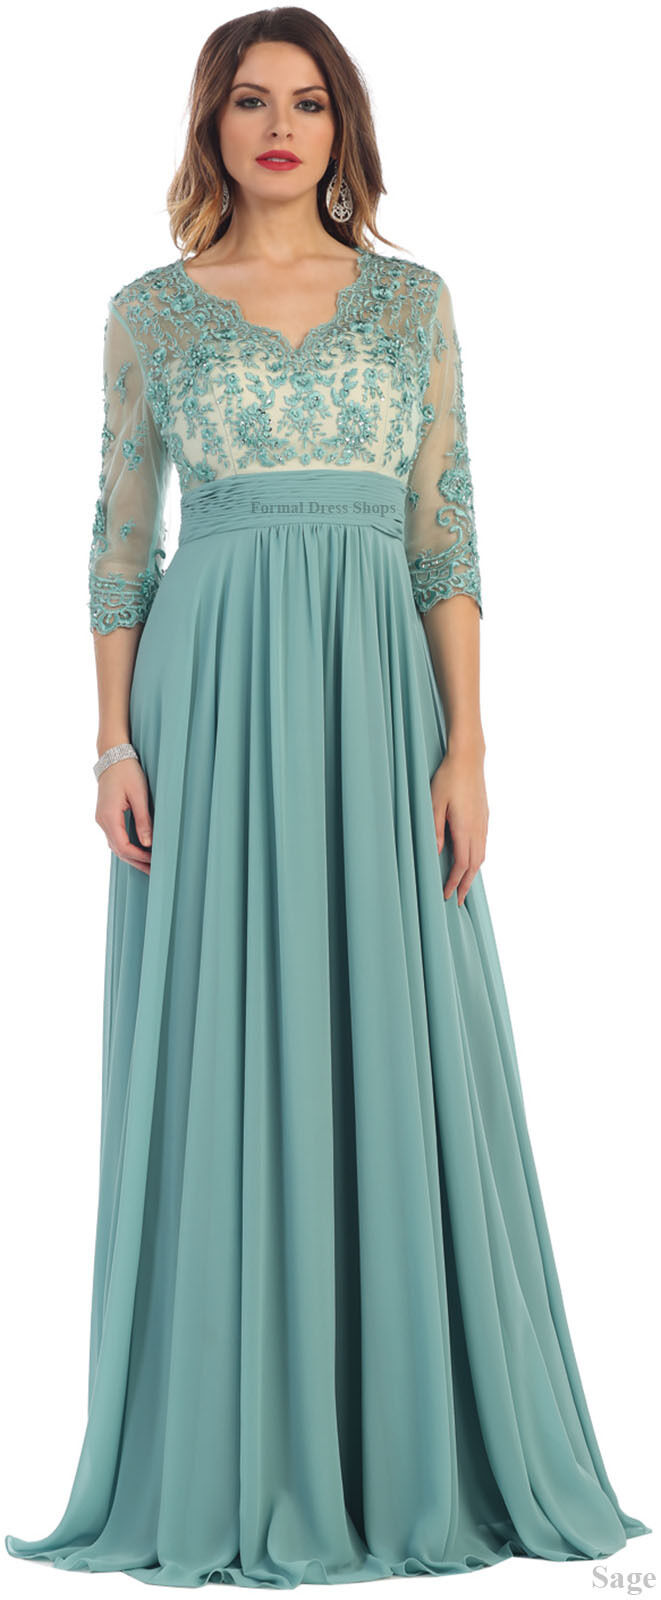 Details about NEW FORMAL EVENING LONG GOWN MOTHER of THE BRIDE GROOM DRESS CHURCH & PLUS SIZE